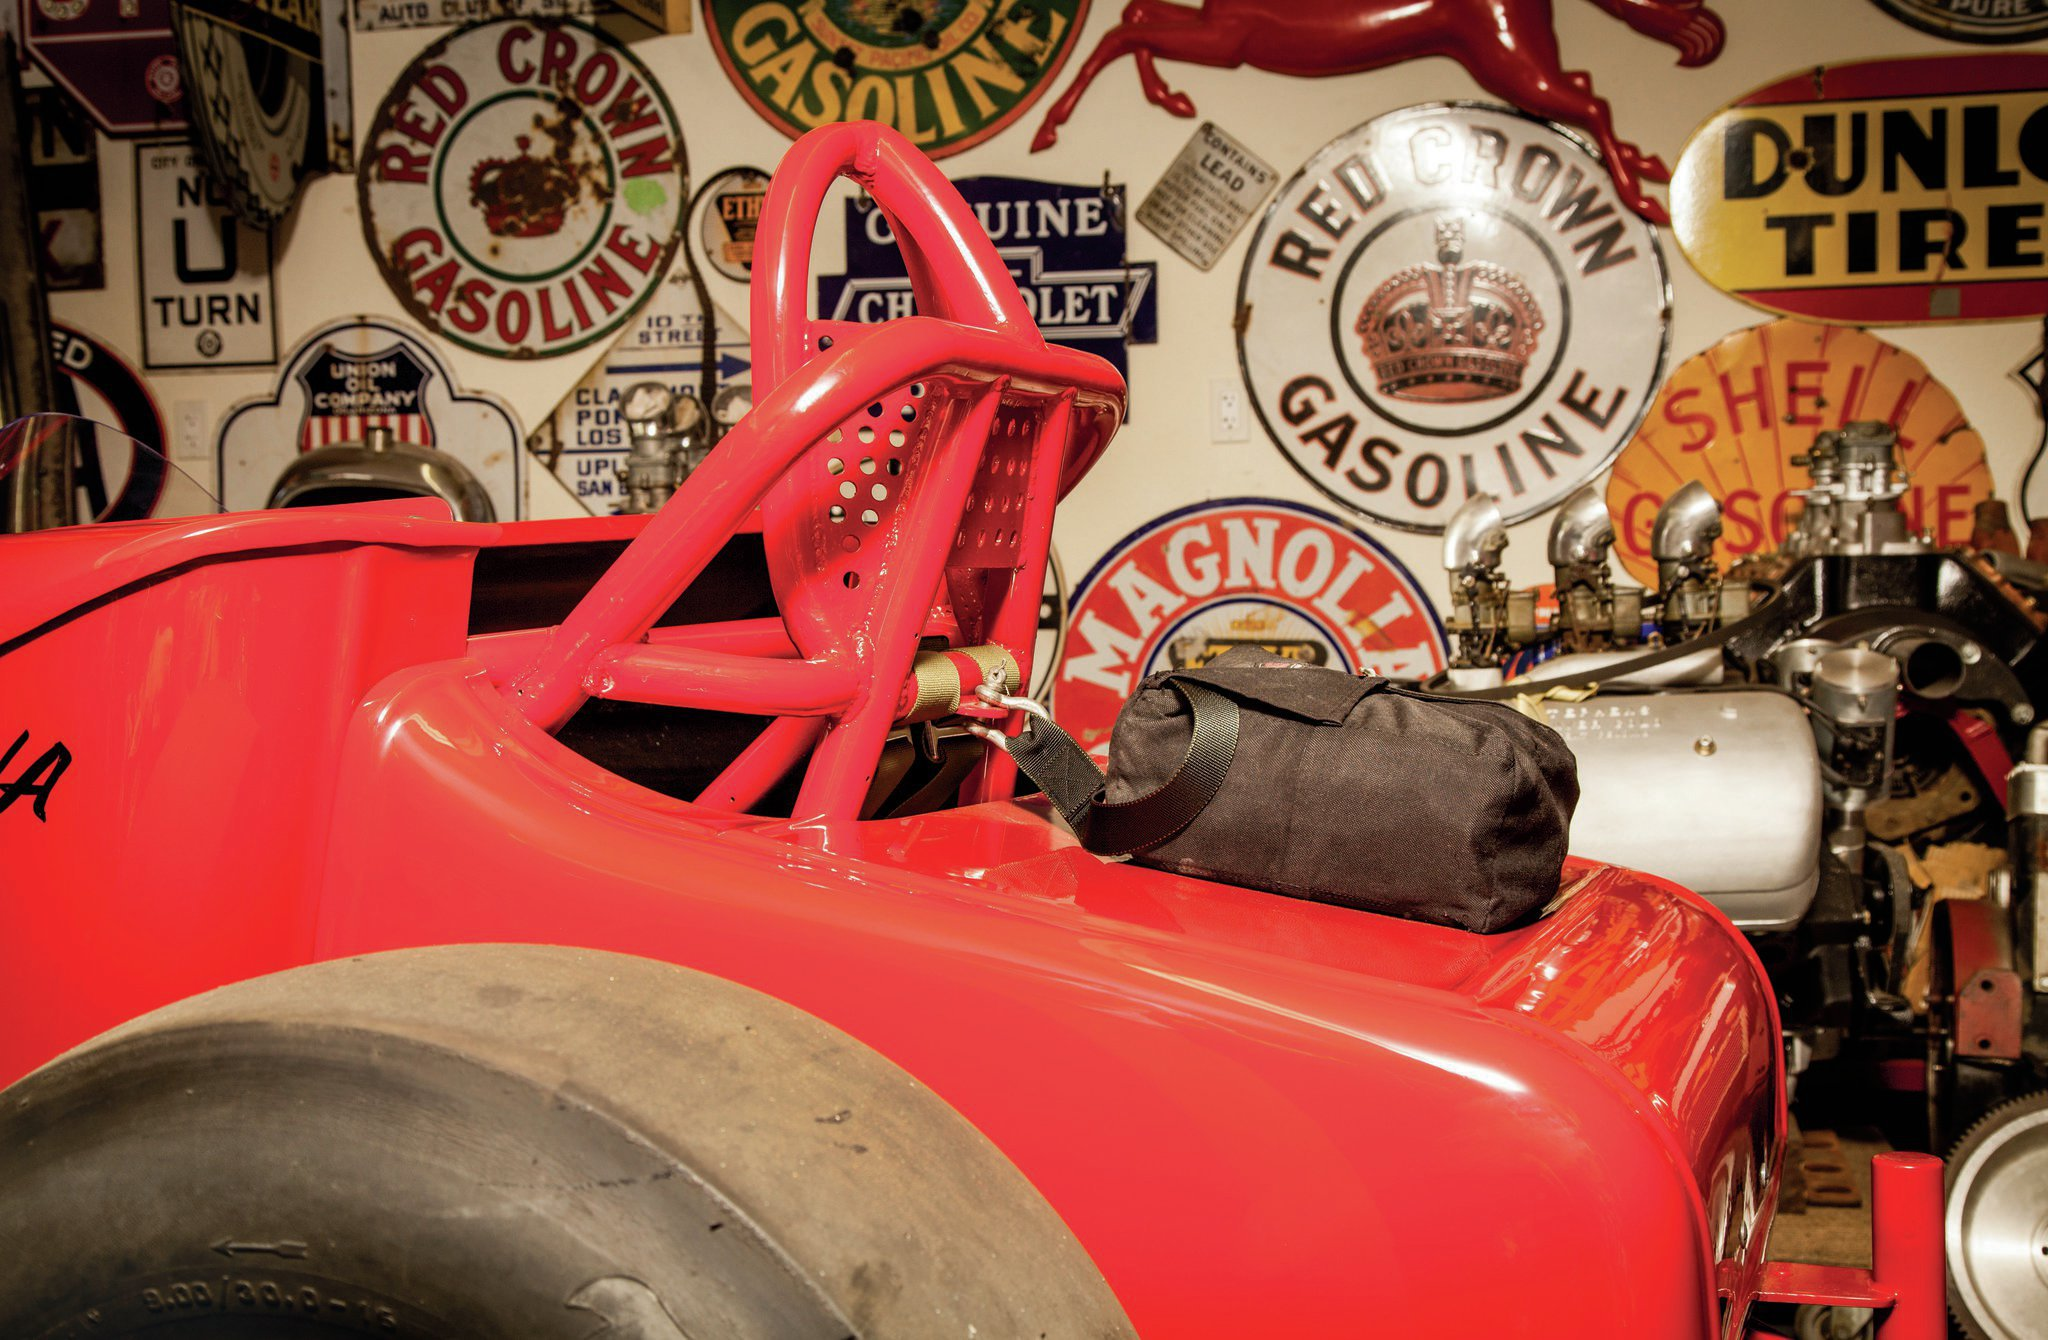 The original T tub was long gone, but Richard Lux had a vintage fiberglass T body to bring to the project. Only the tail section is modern.